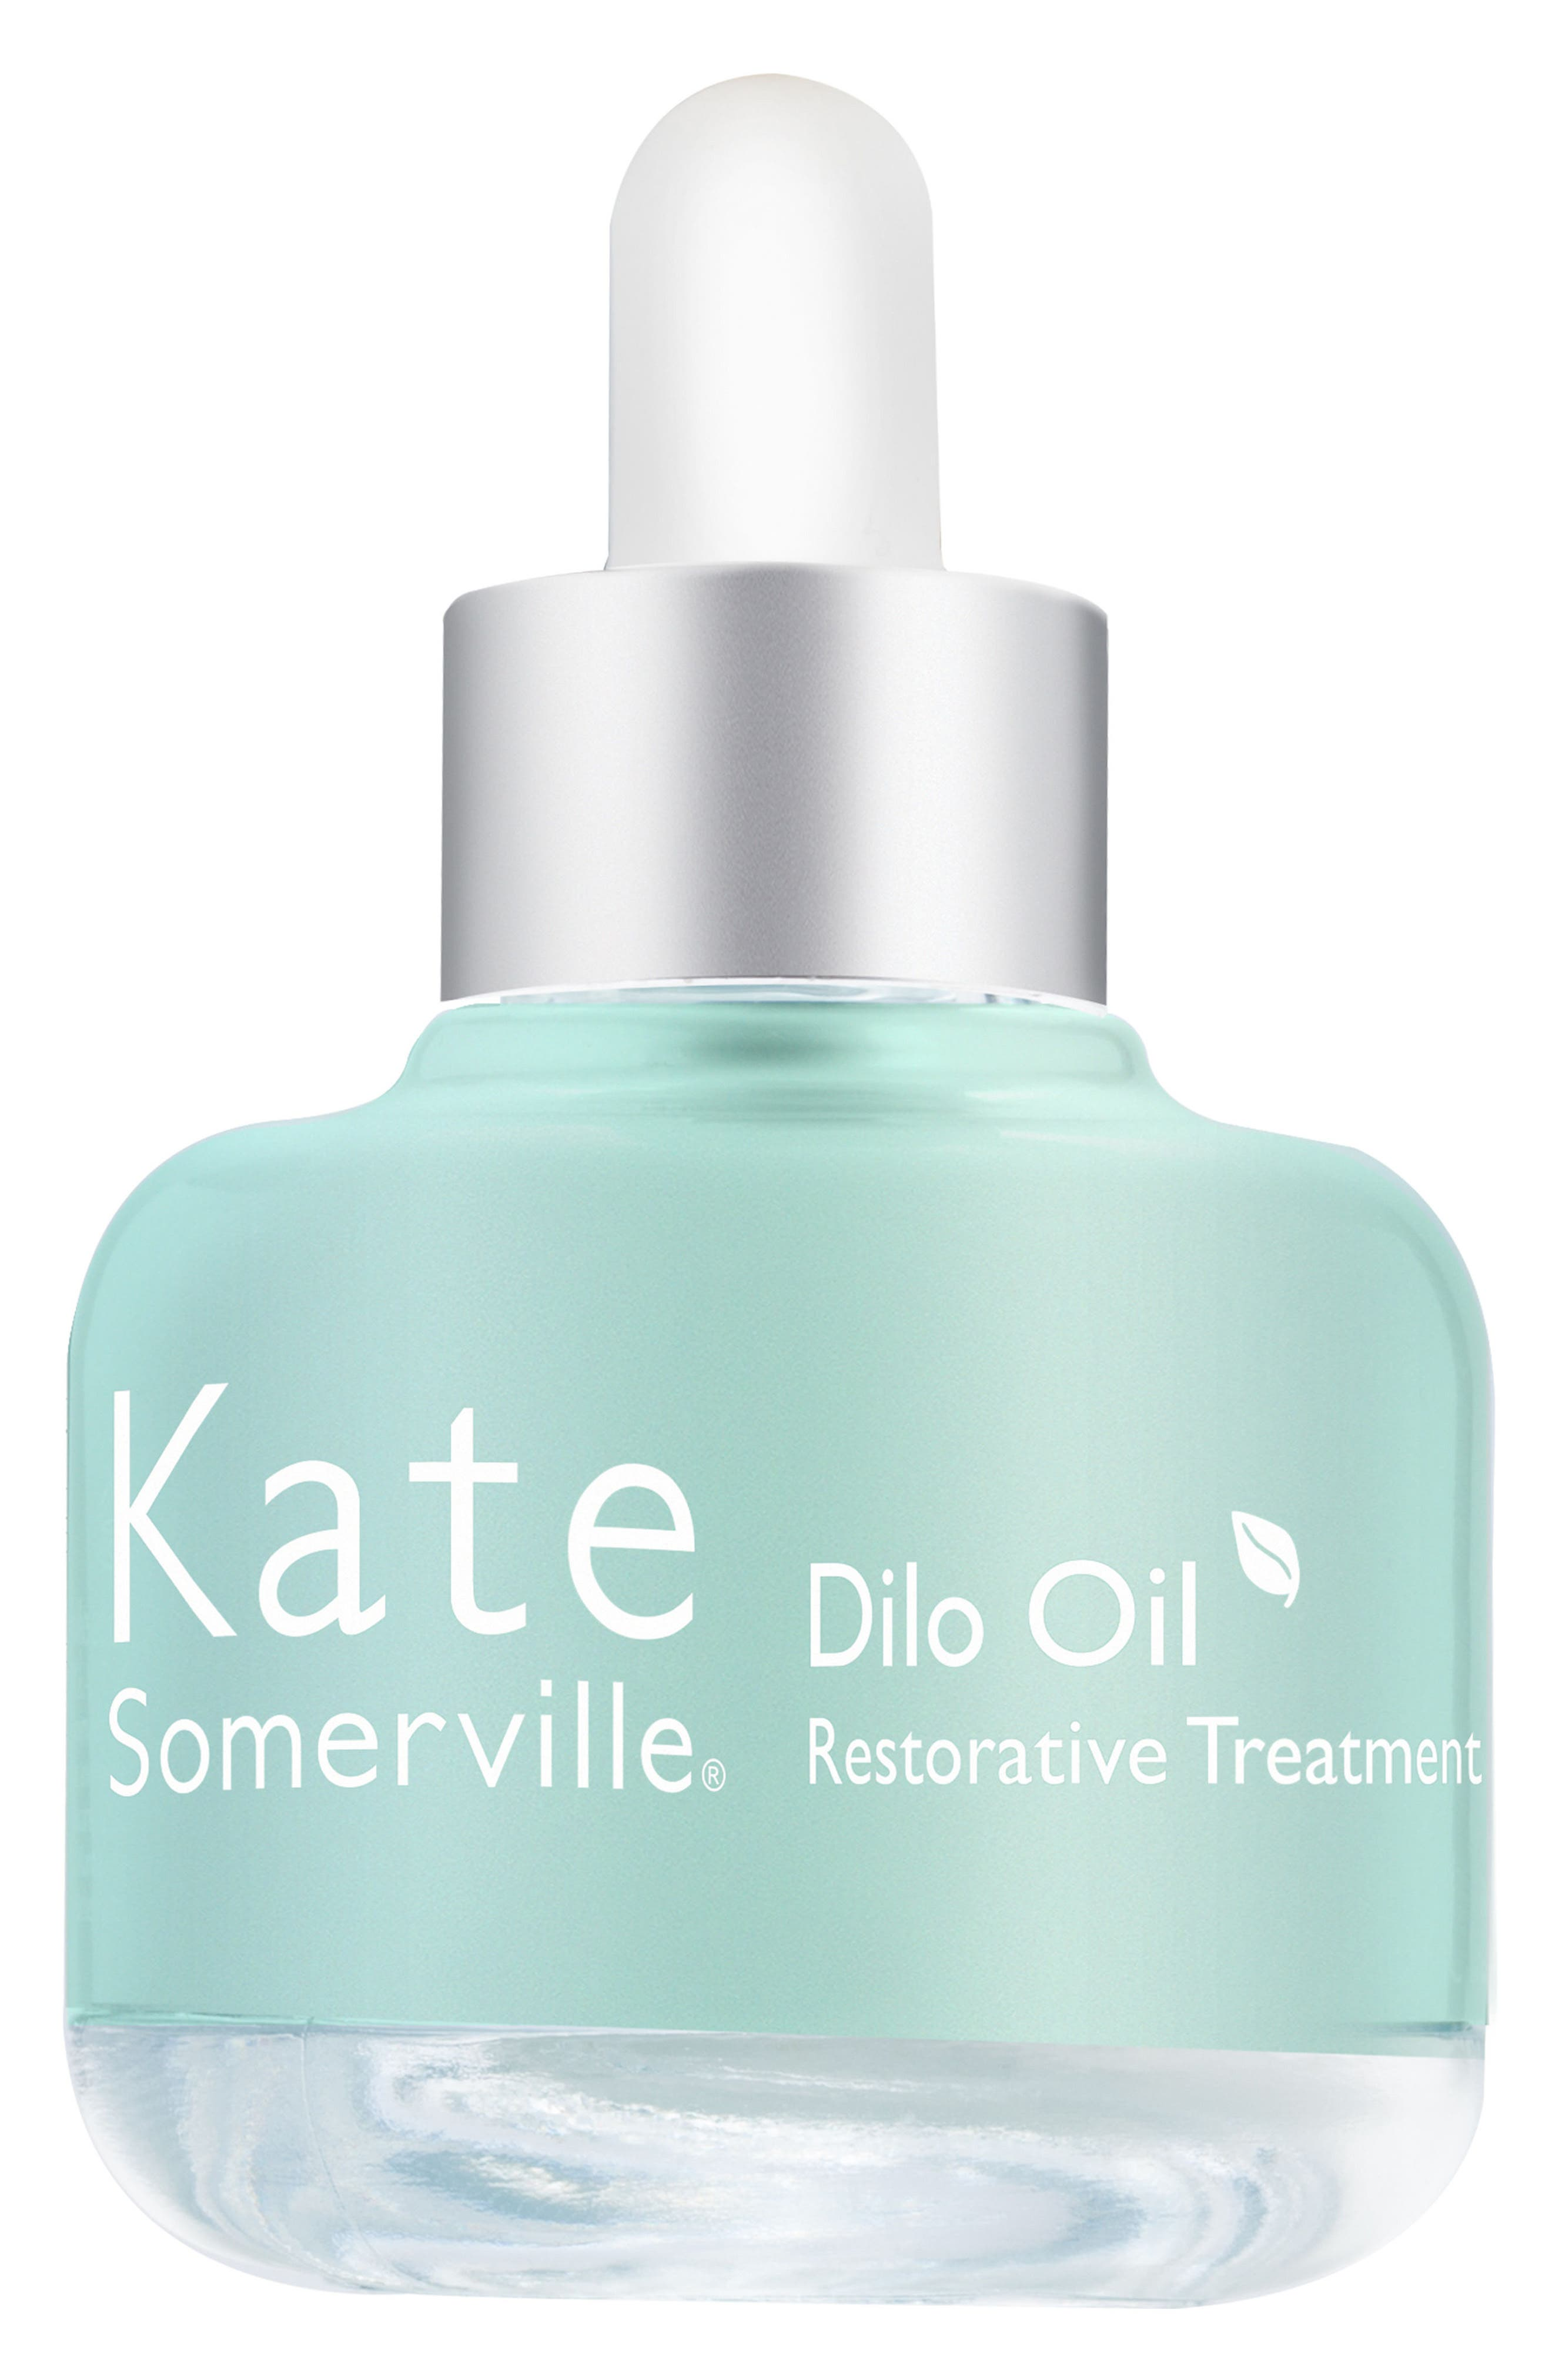 Alternate Image 1 Selected - Kate Somerville® Dilo Oil Restorative Treatment